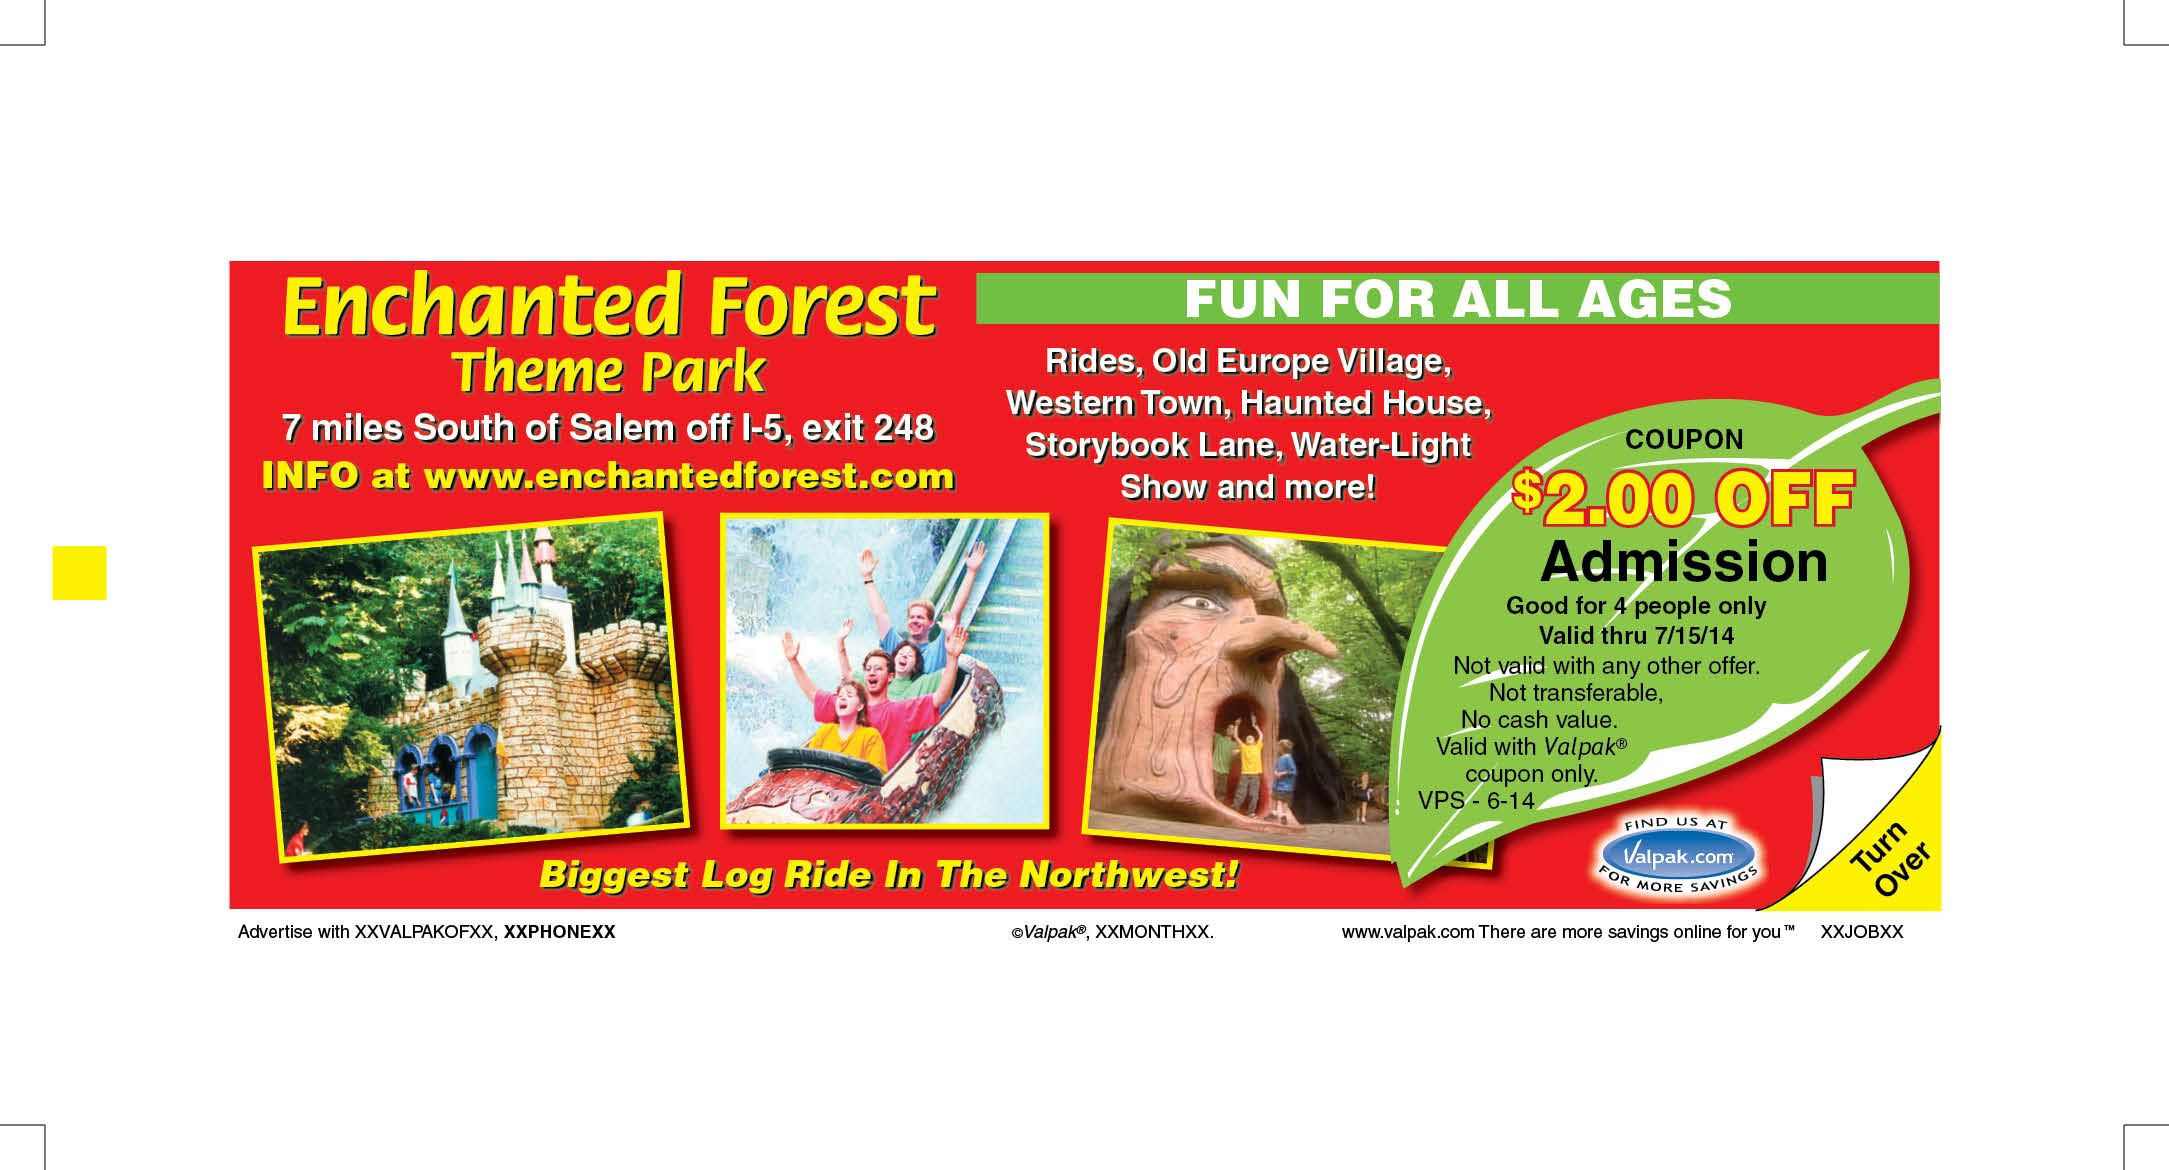 Enchanted Forest Coupons and Deals